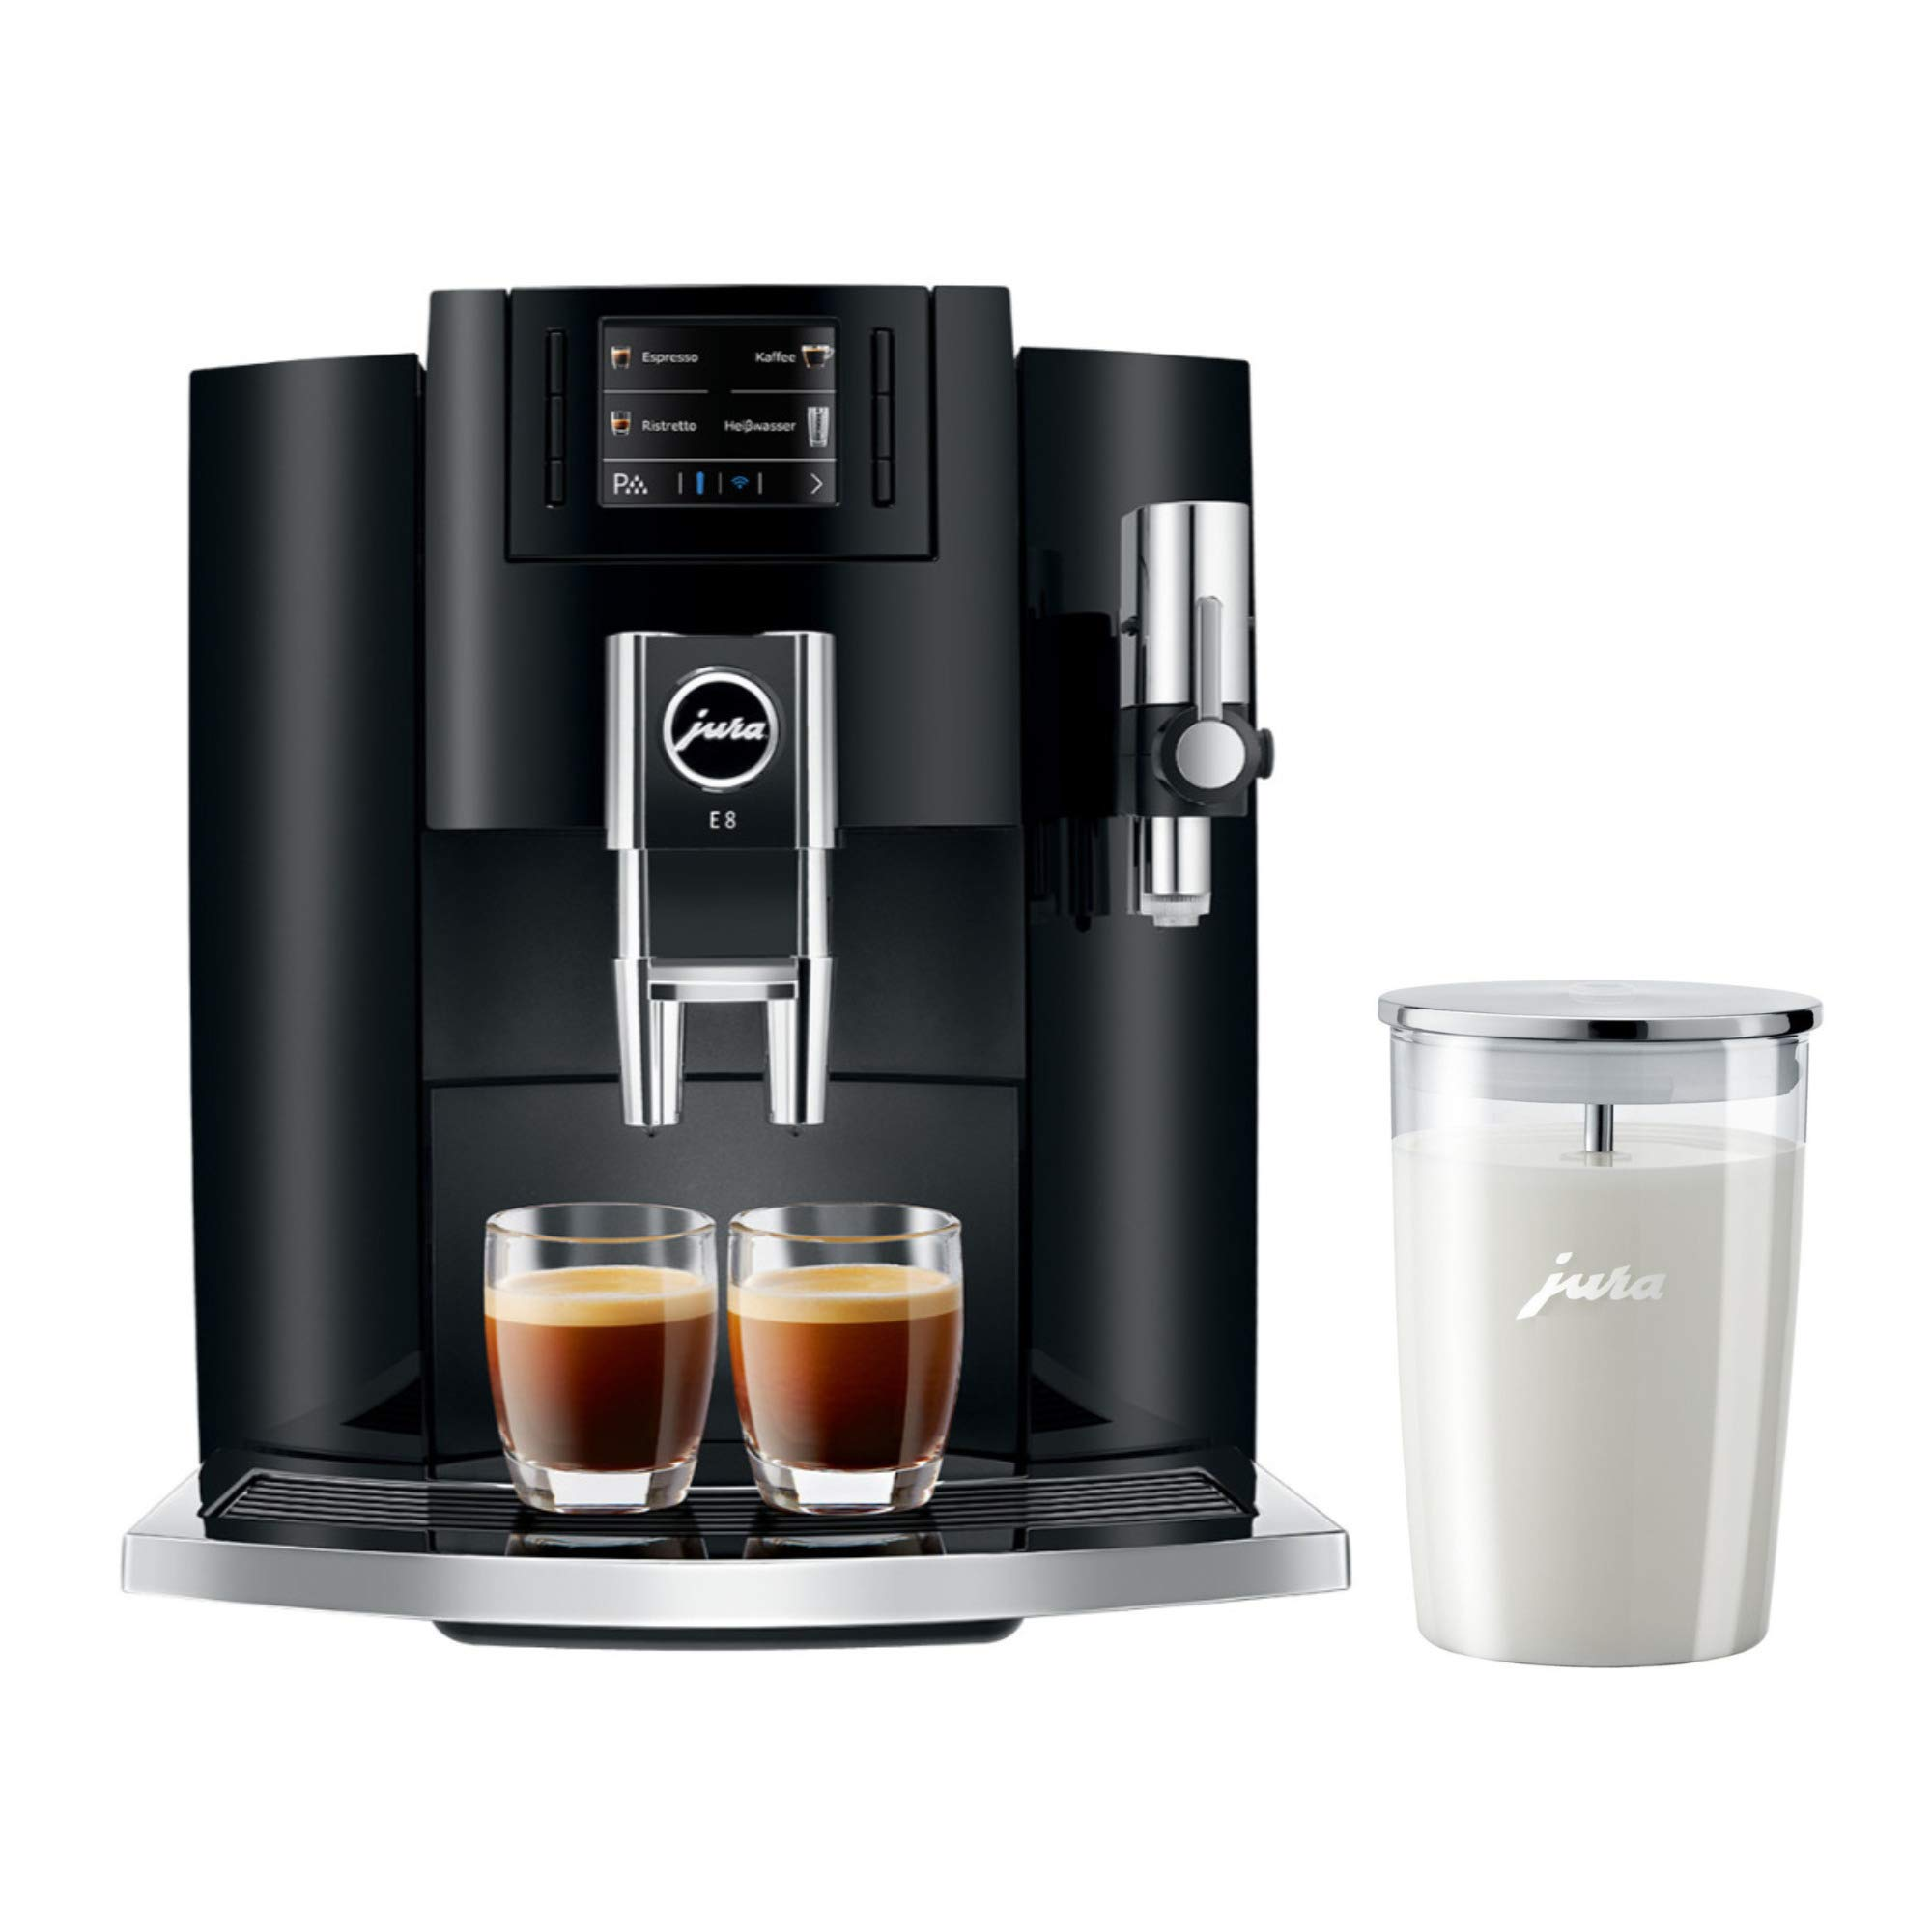 Jura E8 Automatic Coffee Machine (15270, Piano Black) Bundle with Glass Milk Container (2 Items) by Jura